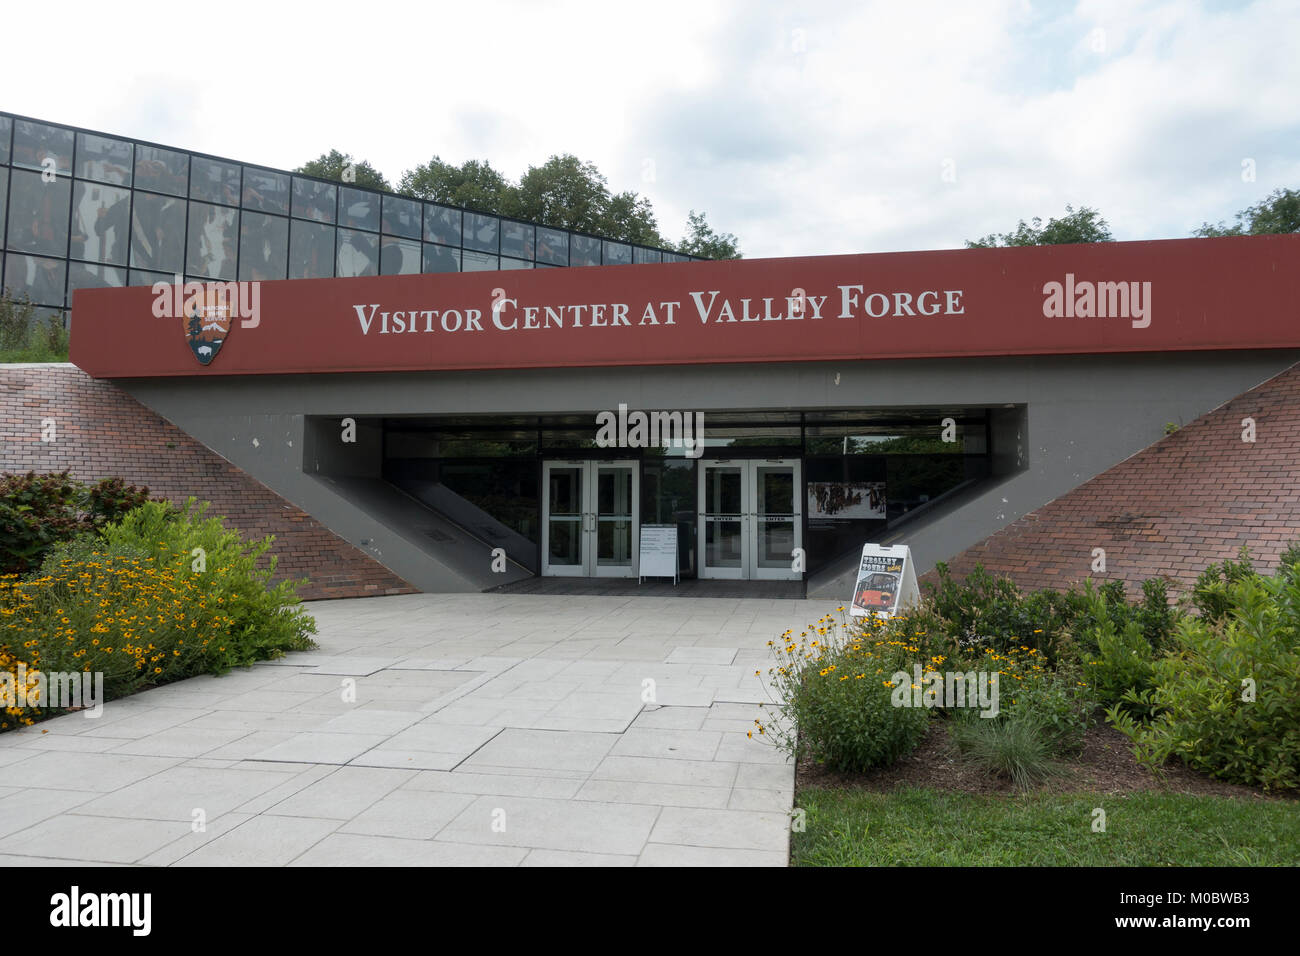 The Visitor Center at Valley Forge National Historical Park, Pennsylvania, United States. - Stock Image